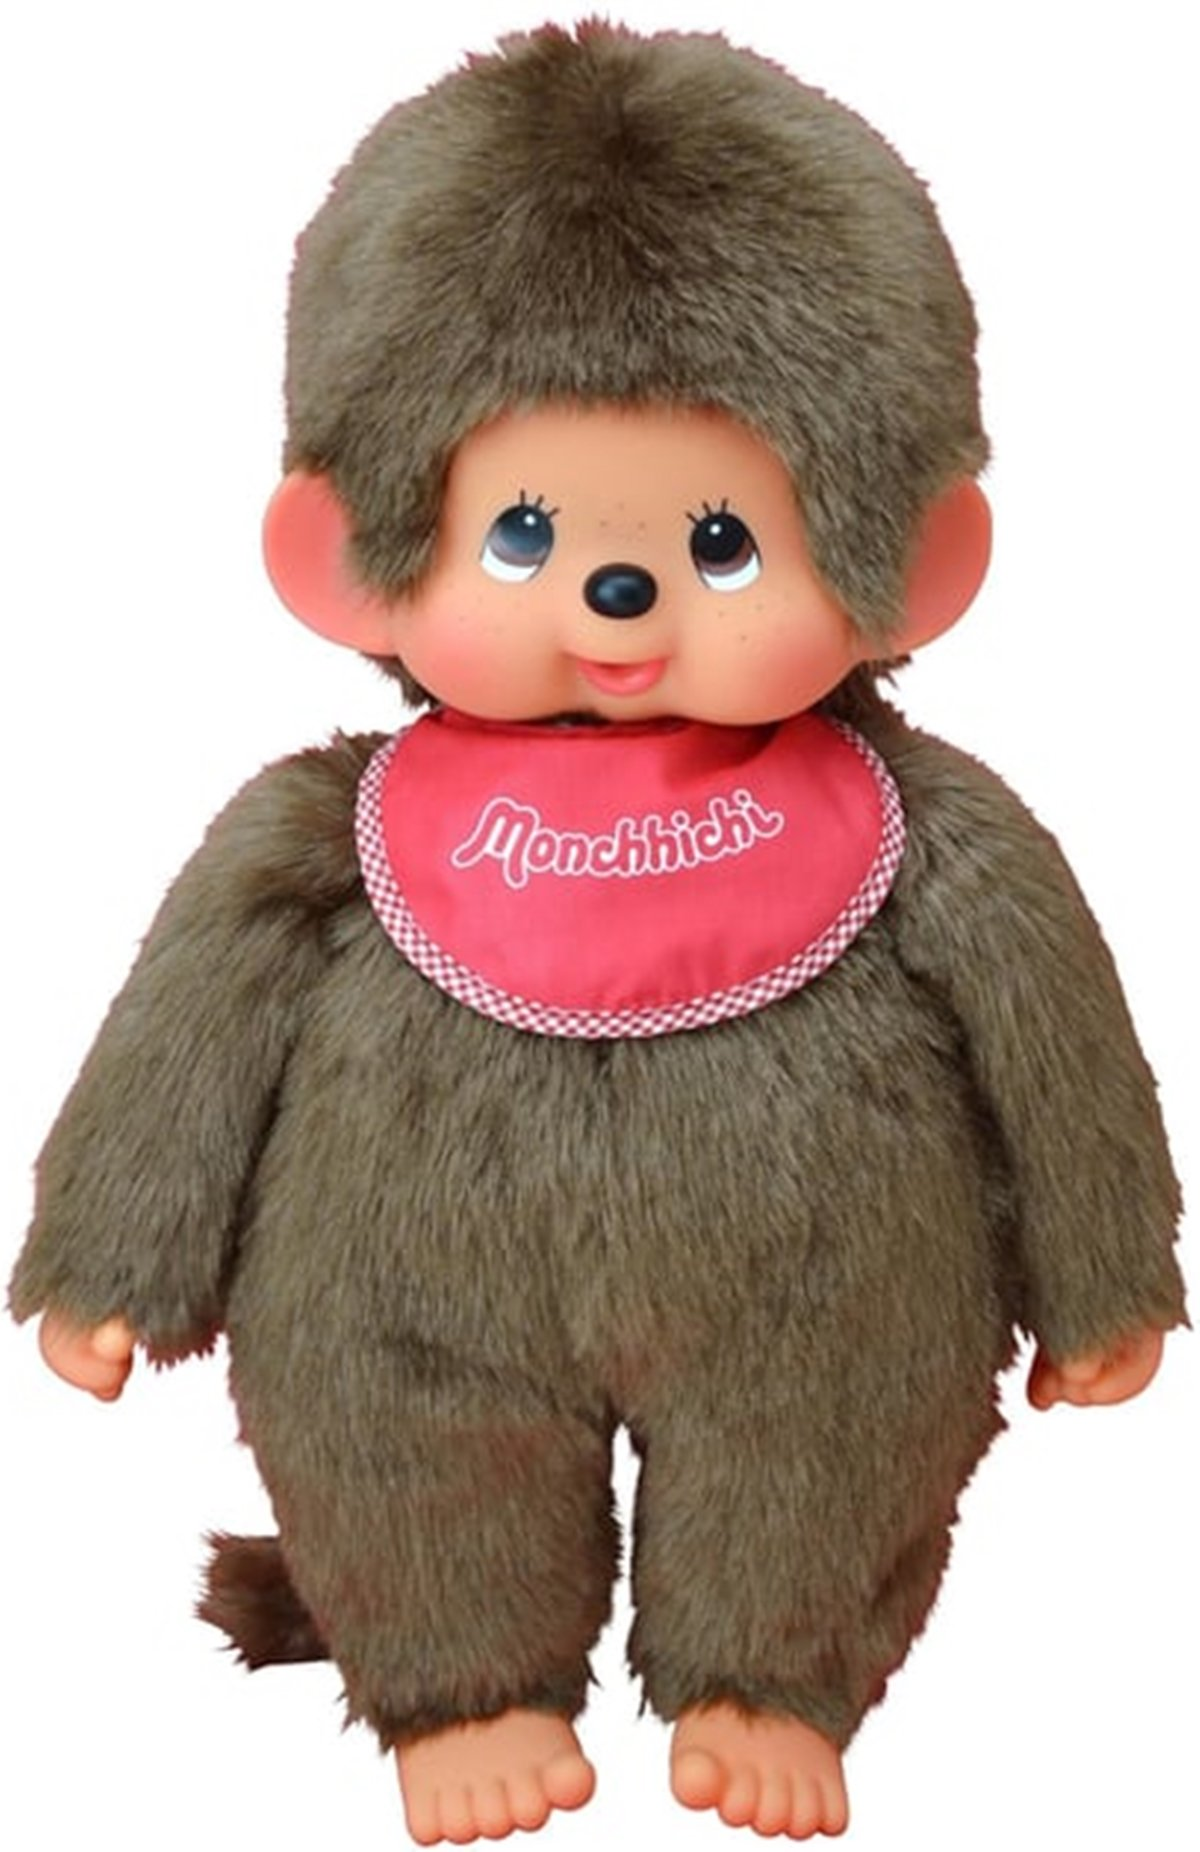 6 44 QUIZ: How Many Of These 15 Cuddly Toys Did YOU Own As A Child?